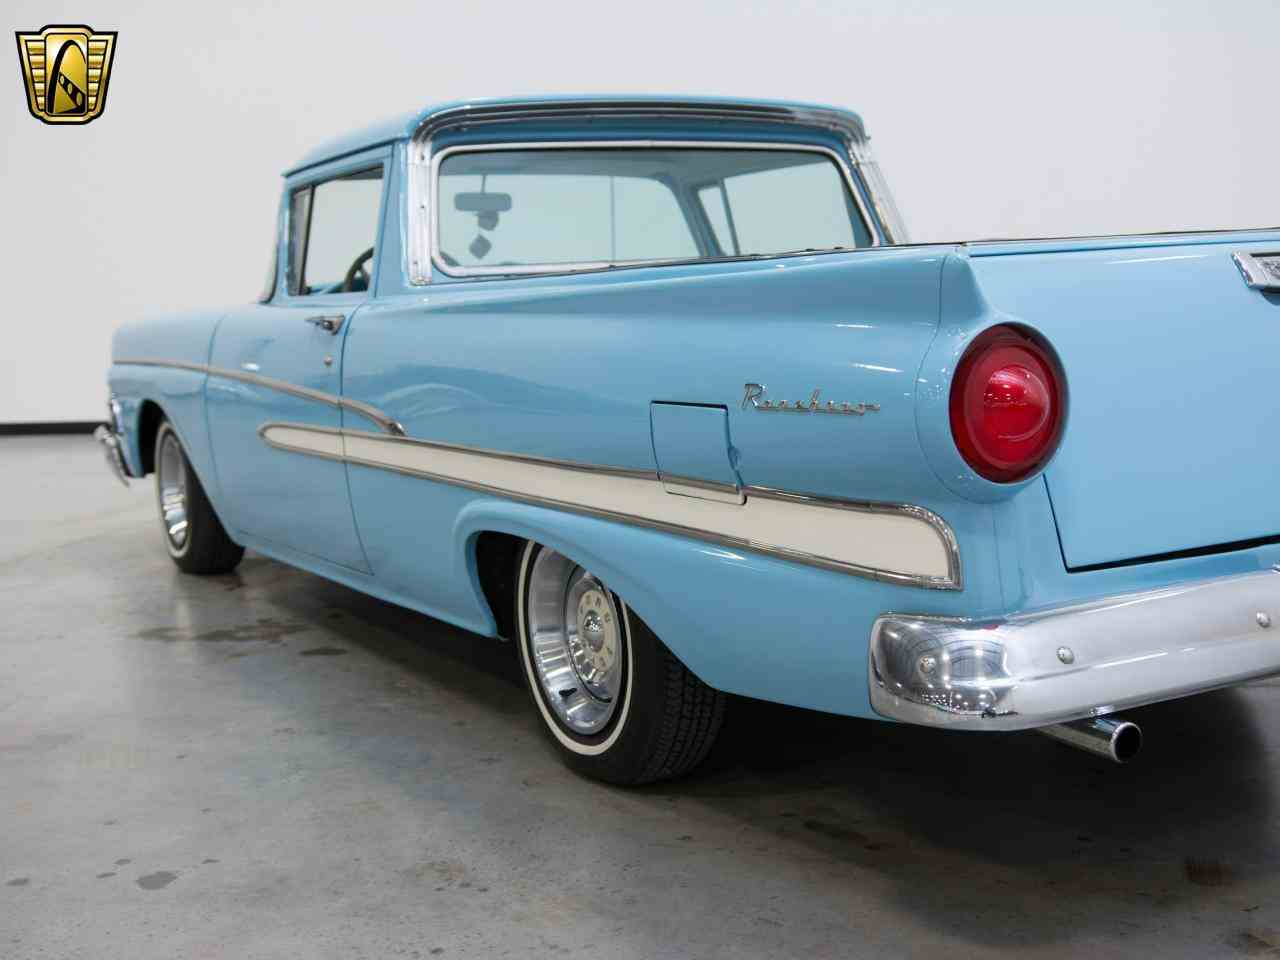 Large Picture of 1958 Ranchero located in Kenosha Wisconsin - $20,995.00 - KH0V